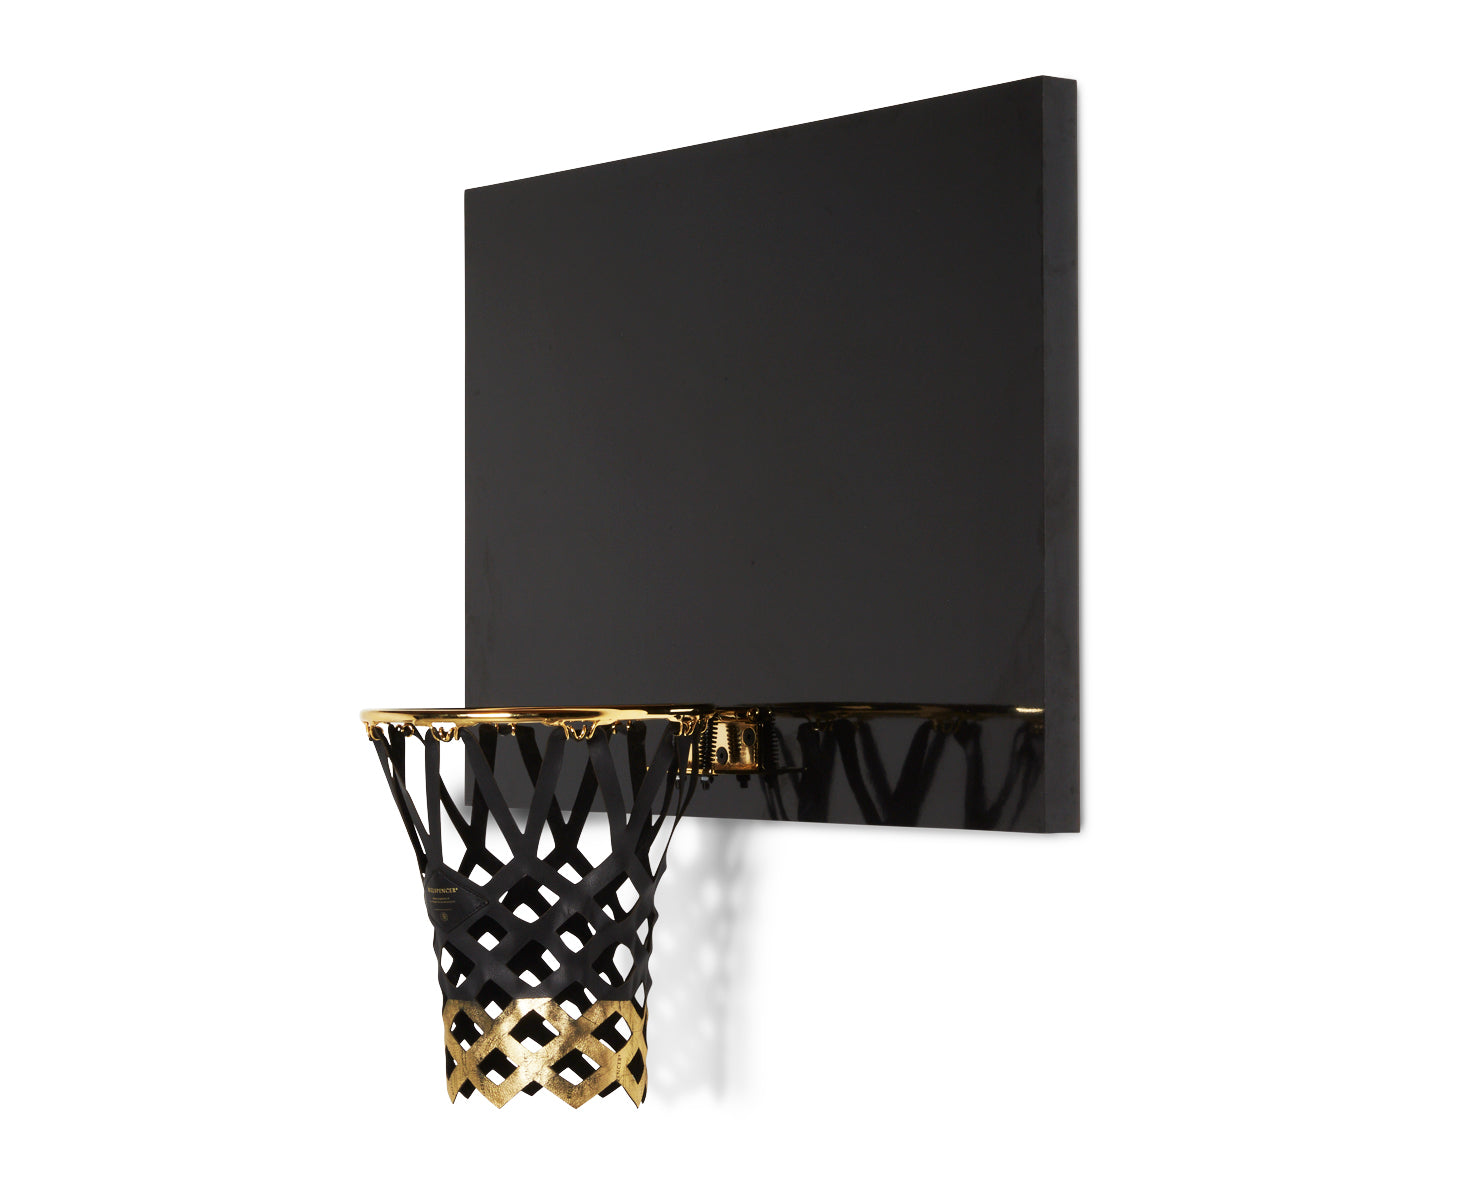 INDOOR MINI BASKETBALL KIT | KILLSPENCER® - 24-Karat Gold and Gloss Black